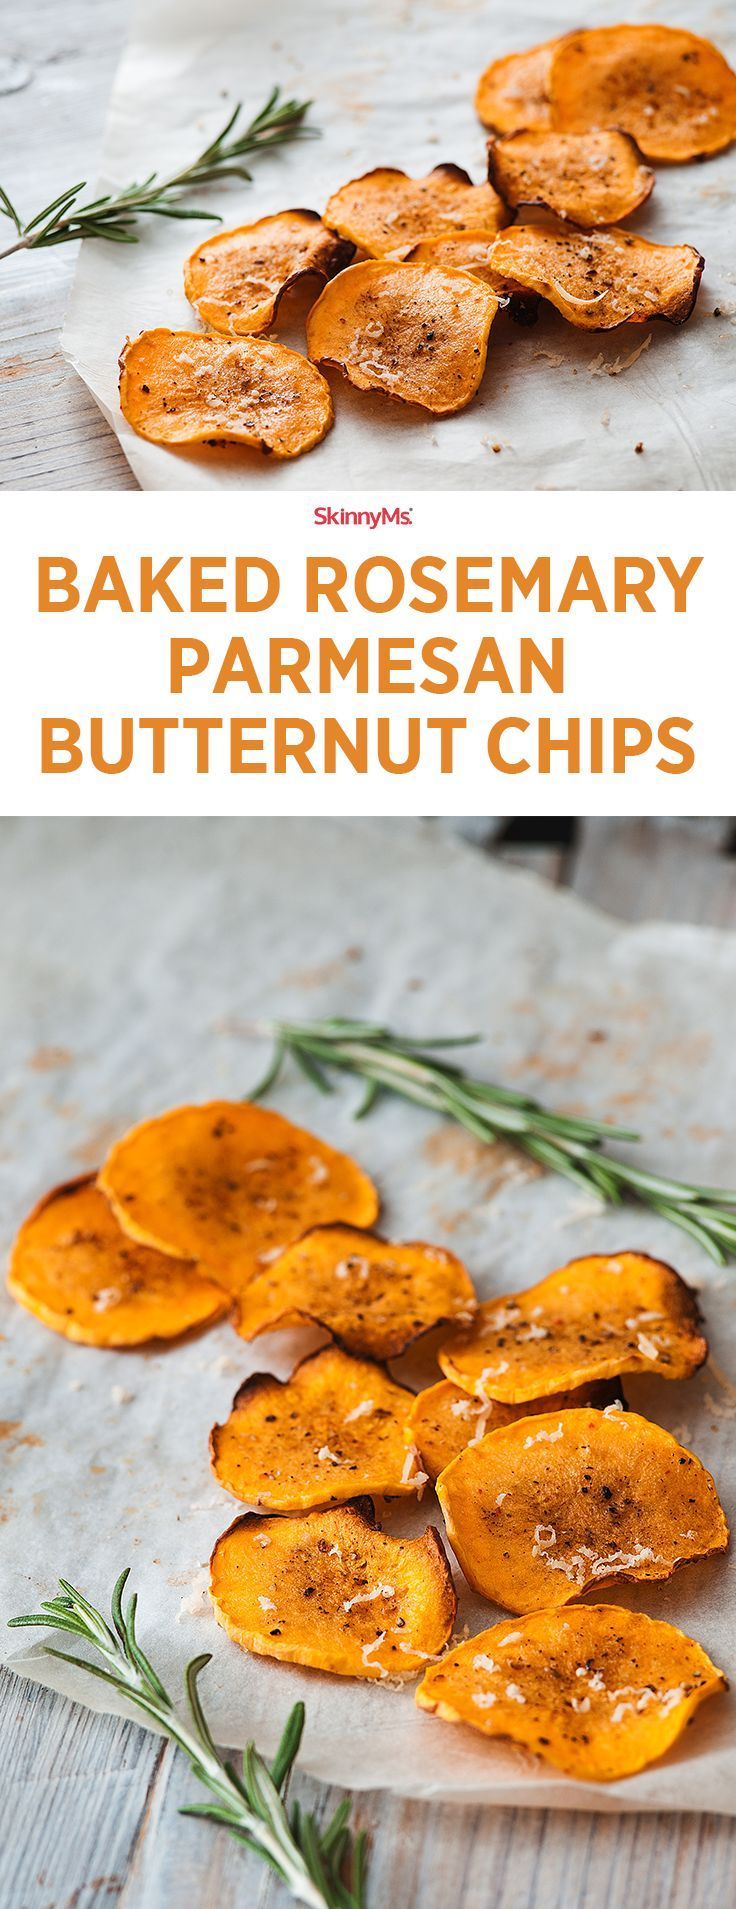 Baked Parmesan Butternut Chips picture